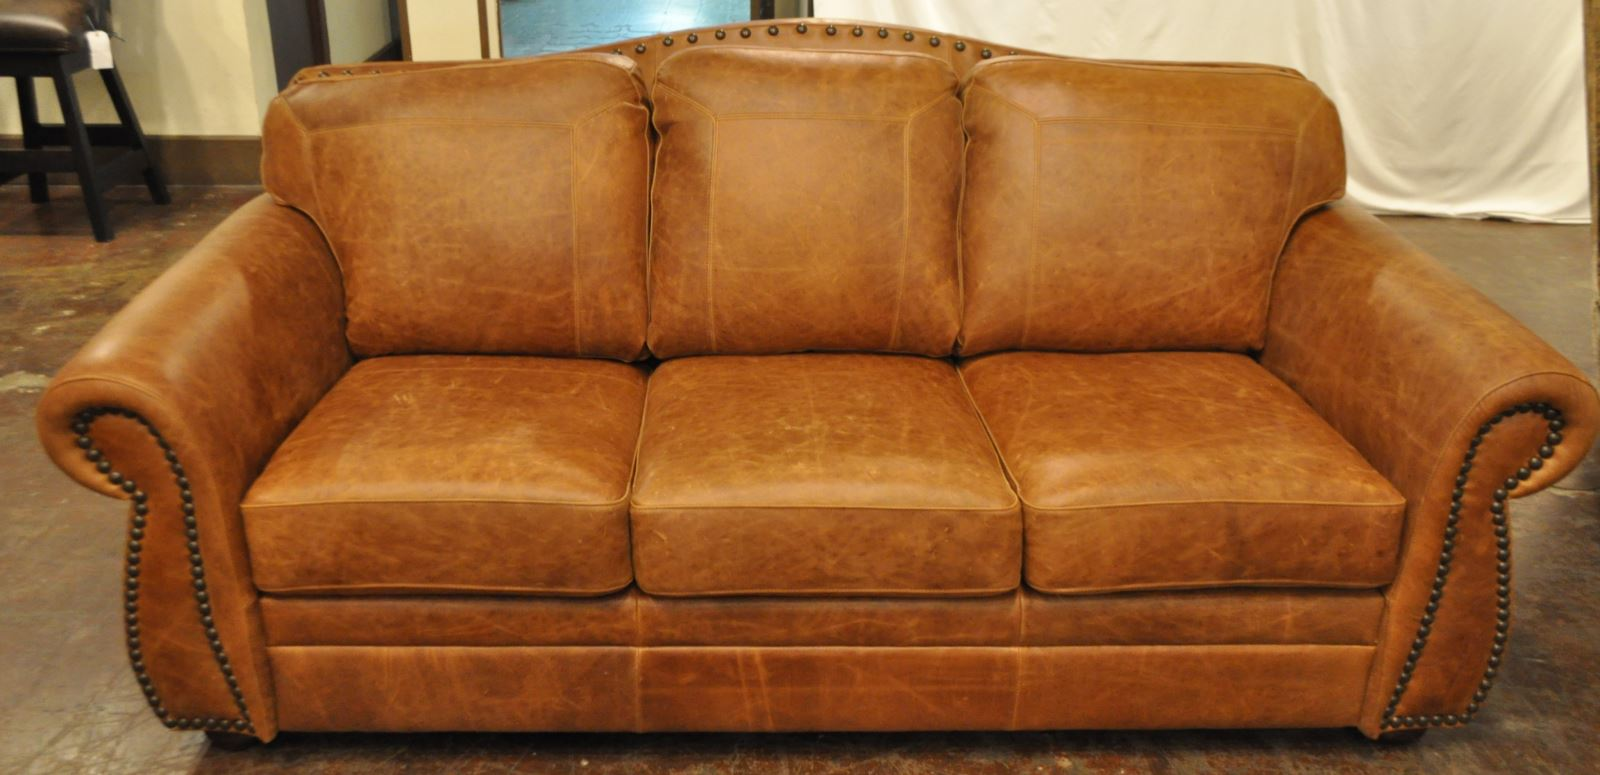 Superb 100 Top Grain Made In Usa The Look Leather Sofa In Fargo Gamerscity Chair Design For Home Gamerscityorg